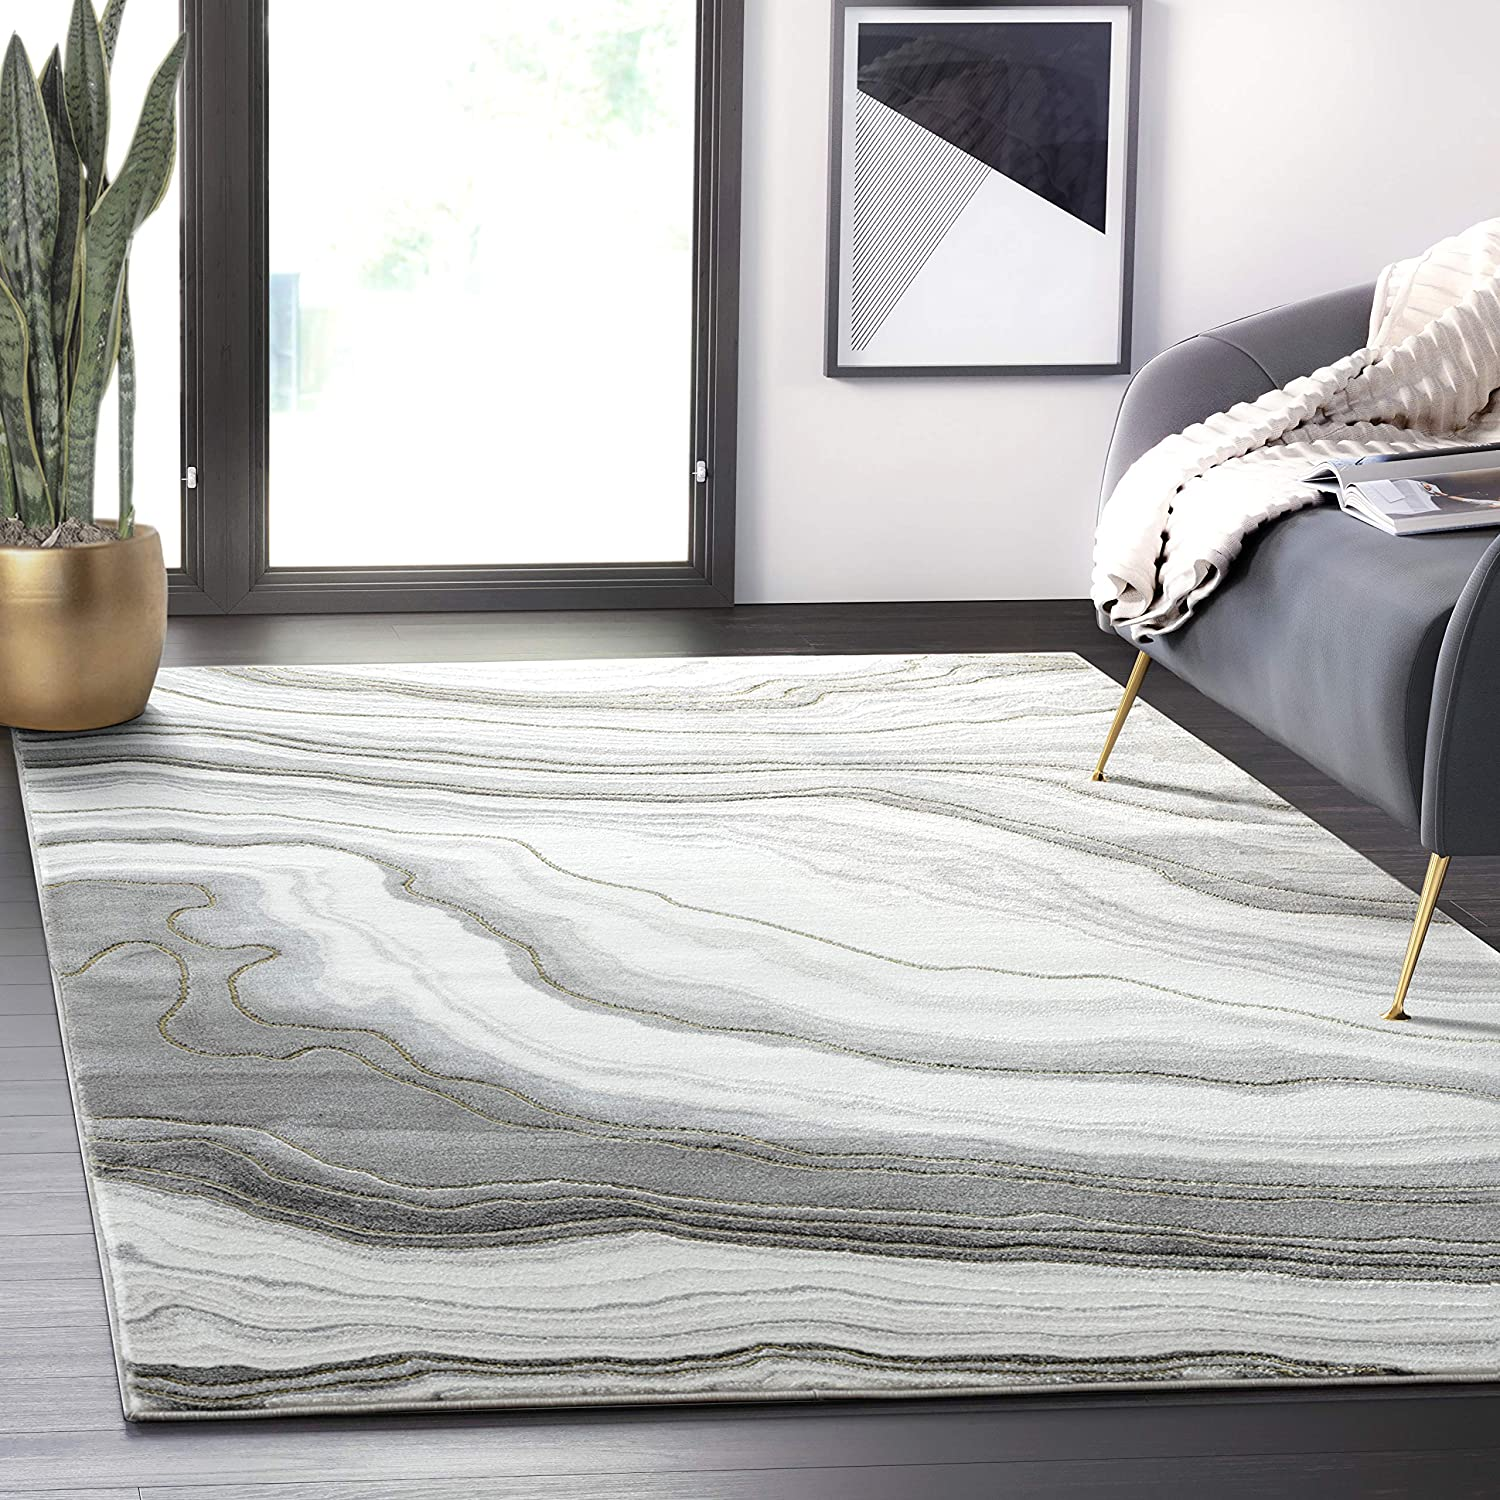 Abani Rugs Contemporary Grey Gold Granite 4' M trend rank Area Purchase 6' x Rug -